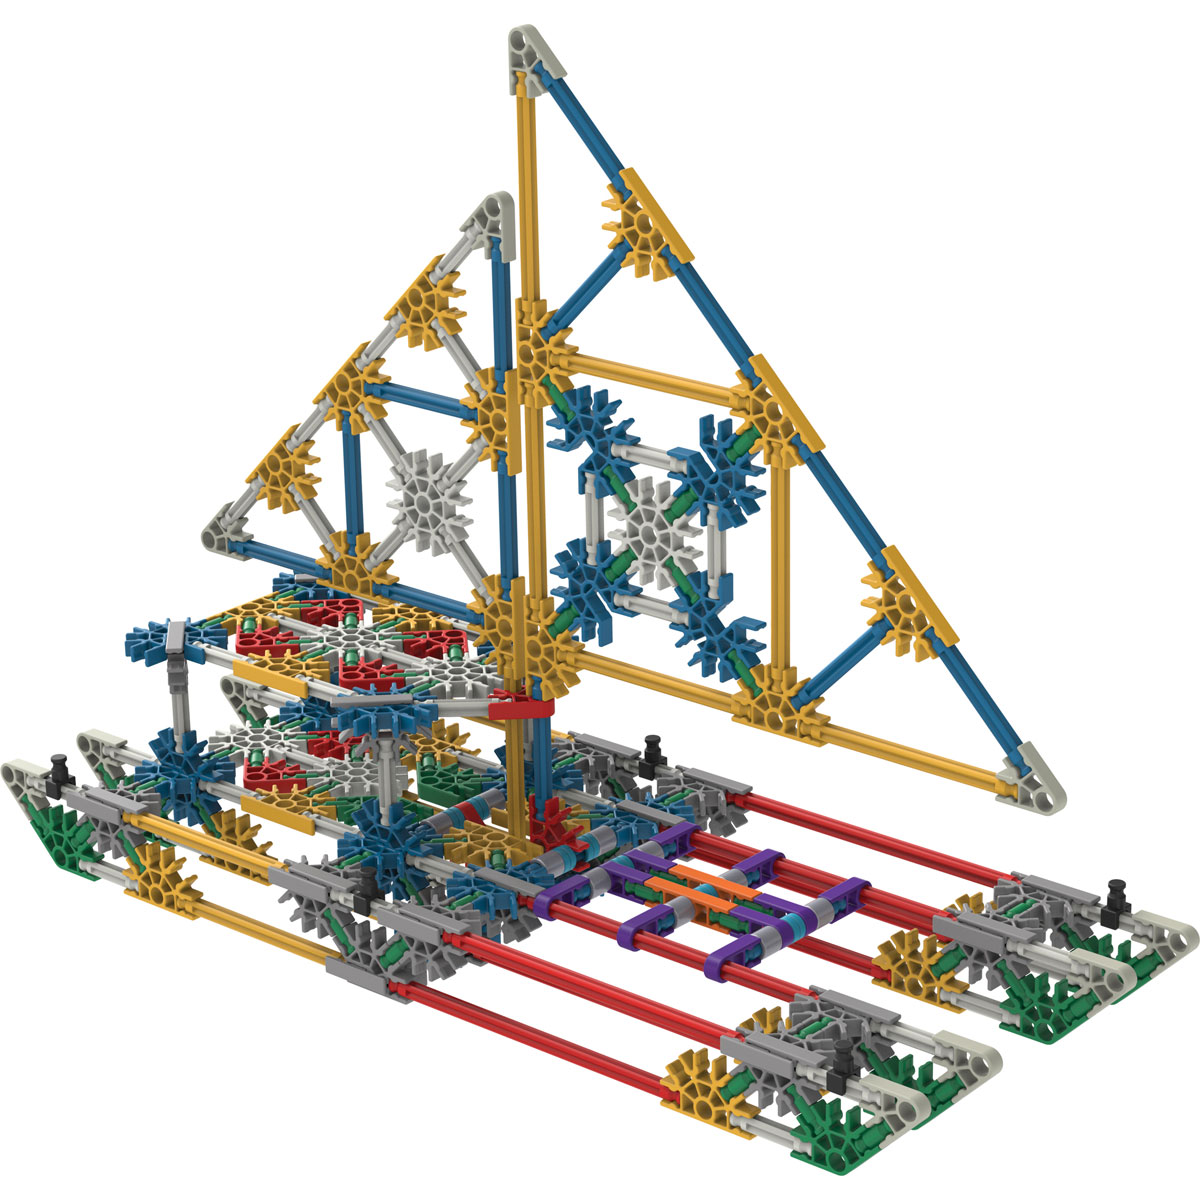 remote planes with K Nex 70 Model Building Set 705 Pieces Knex Education Kx13419 Dhkx13419 5721 on Fiji 7 Yasawa Islands Cruise as well The Dulce Base In Dulce New Mexico The Subterrene also Watch moreover K Nex 70 Model Building Set 705 Pieces Knex Education kx13419 Dhkx13419 5721 moreover The Next Frontier Alaskas Best Luxury Lodges.